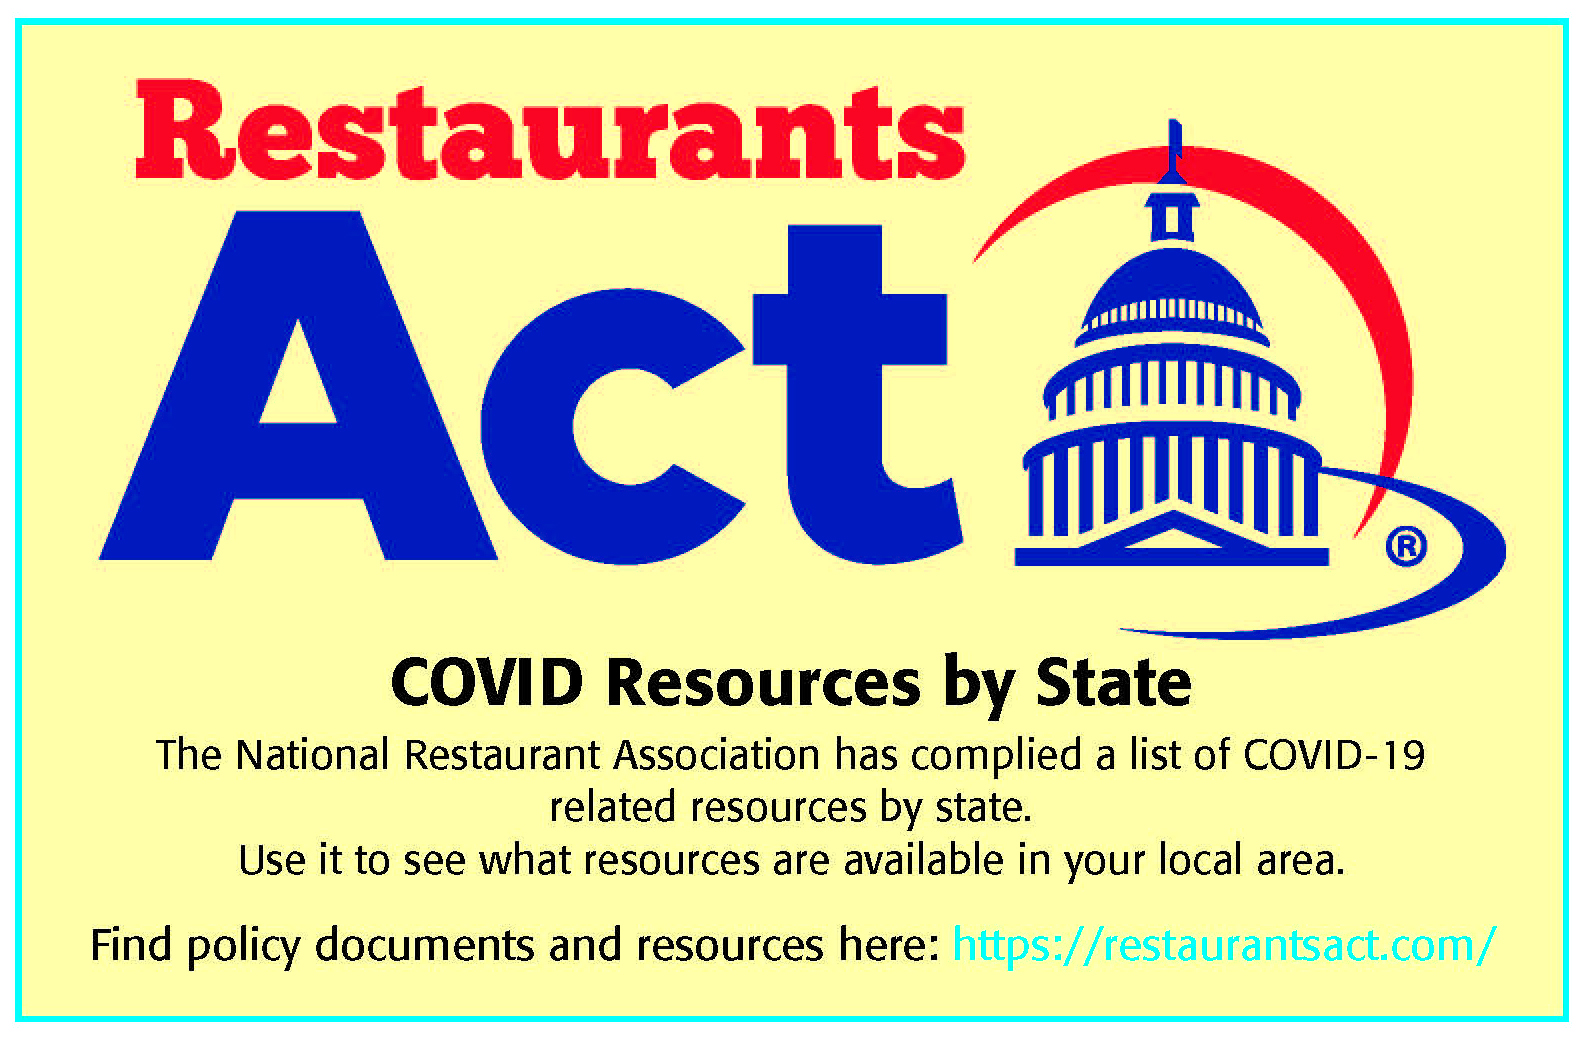 RA_Act_Resources